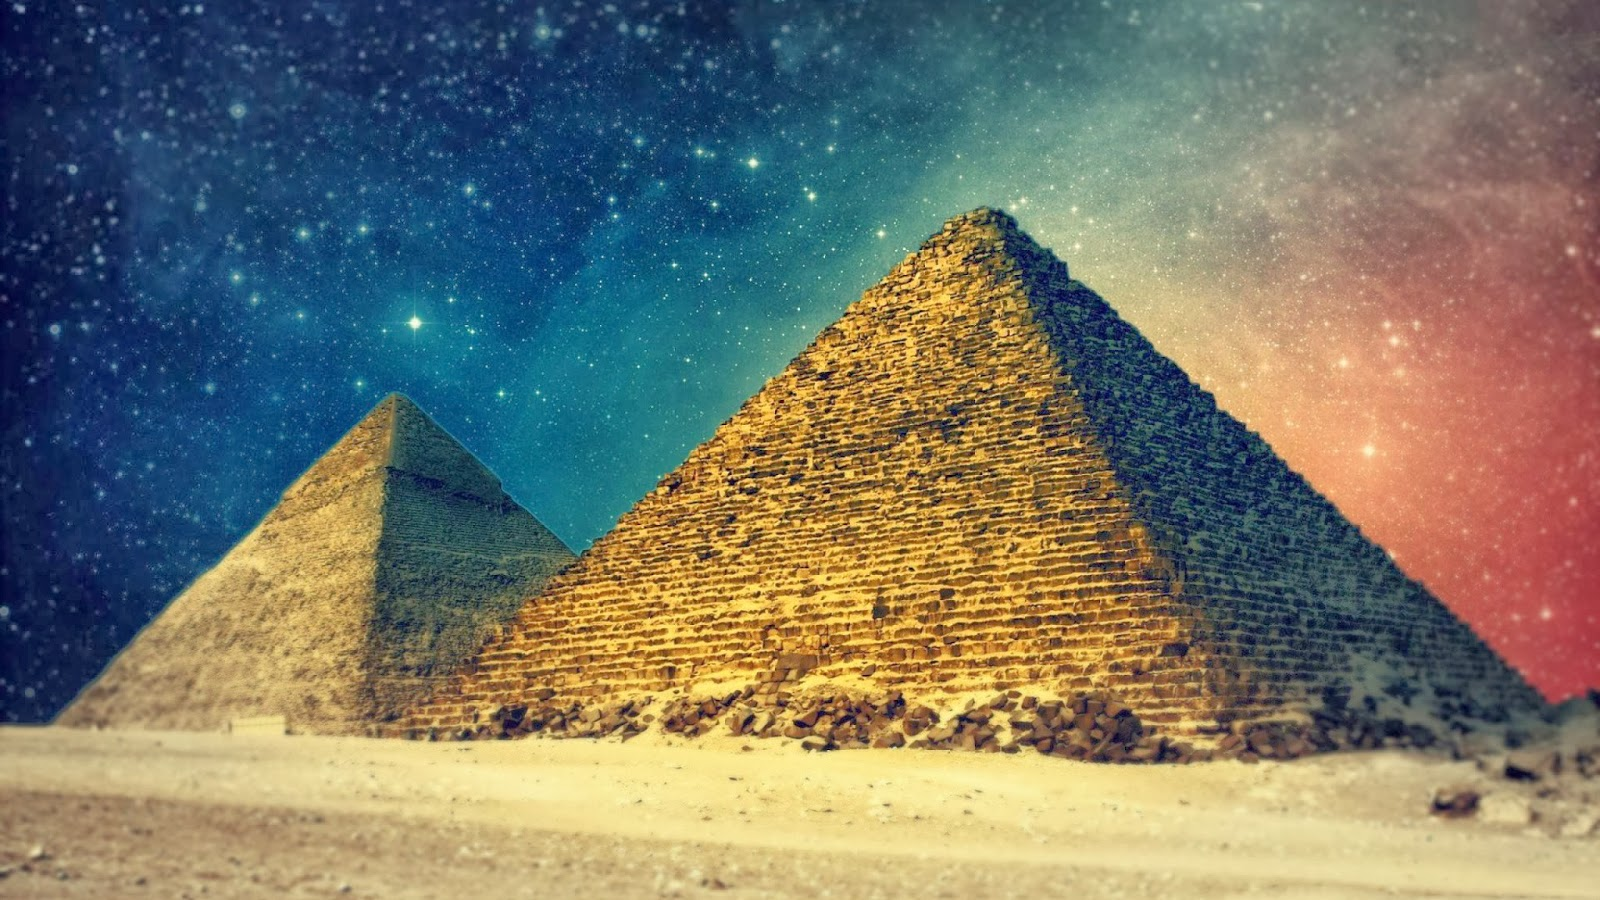 Are the Gods Crazy or Just Mankind? Why Do All Pyramids Align To